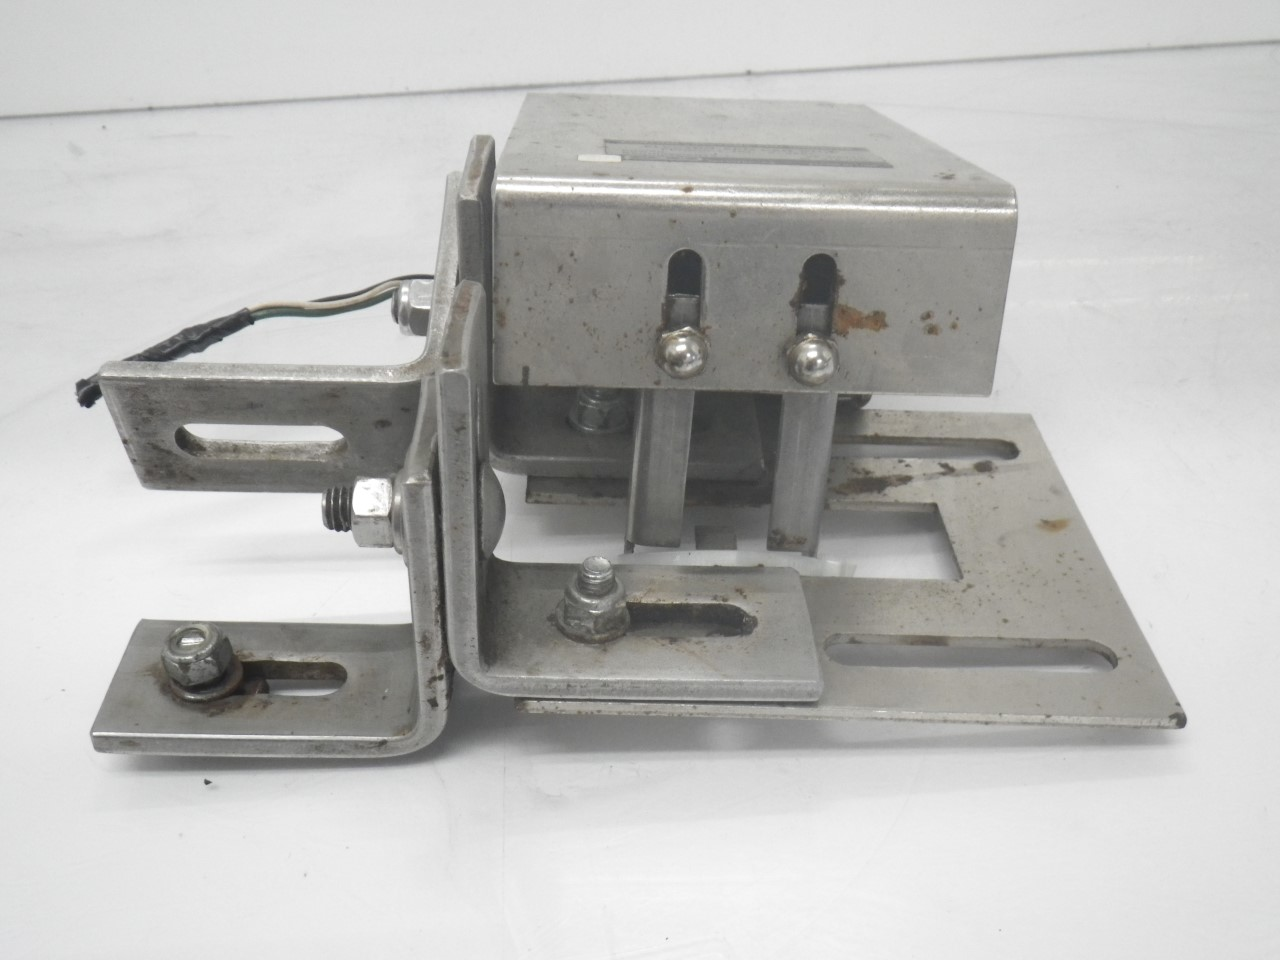 IMGP6937C-3801 C-3800A 3012Peco Electro-arm Controls forPackage Inspection(Used Tested) (16)